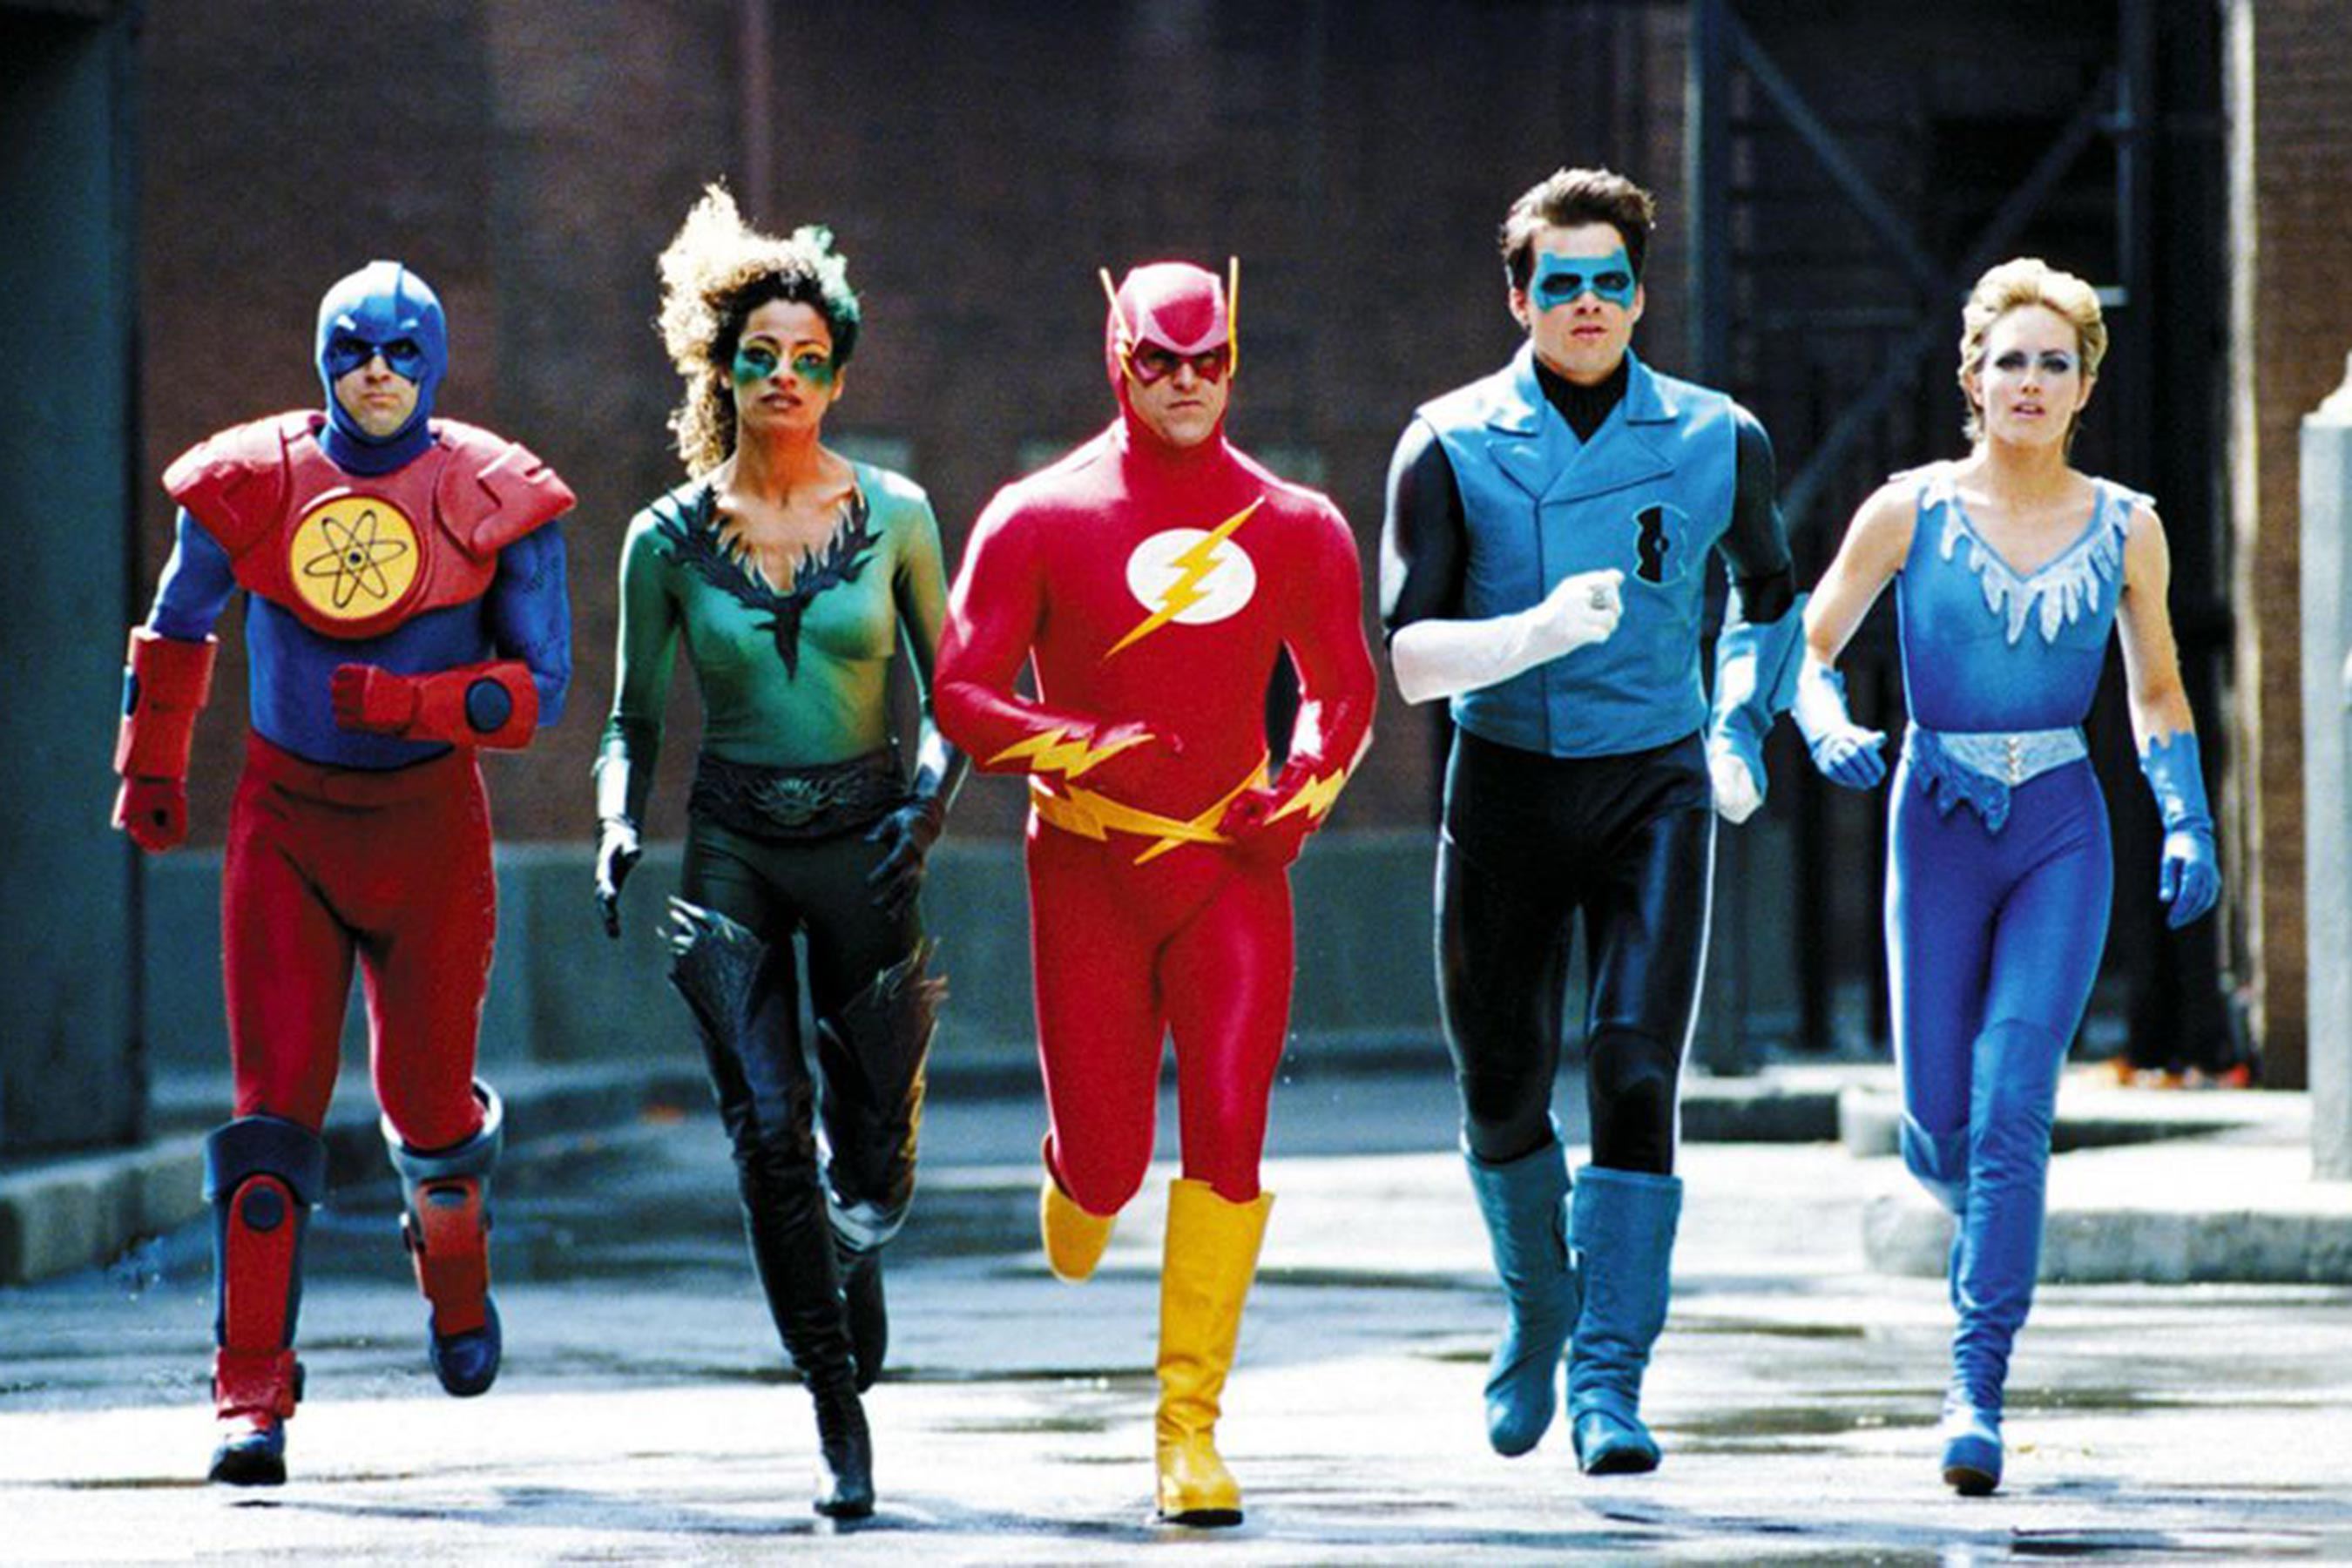 The Justice League - (l to r) The Atom (John Kassir), Fire (Michelle Hurd), The Flash (Kenny Johnston), Green Lantern (Matthew Settle) and Ice (Kim Oja) in Justice League of America (1997)